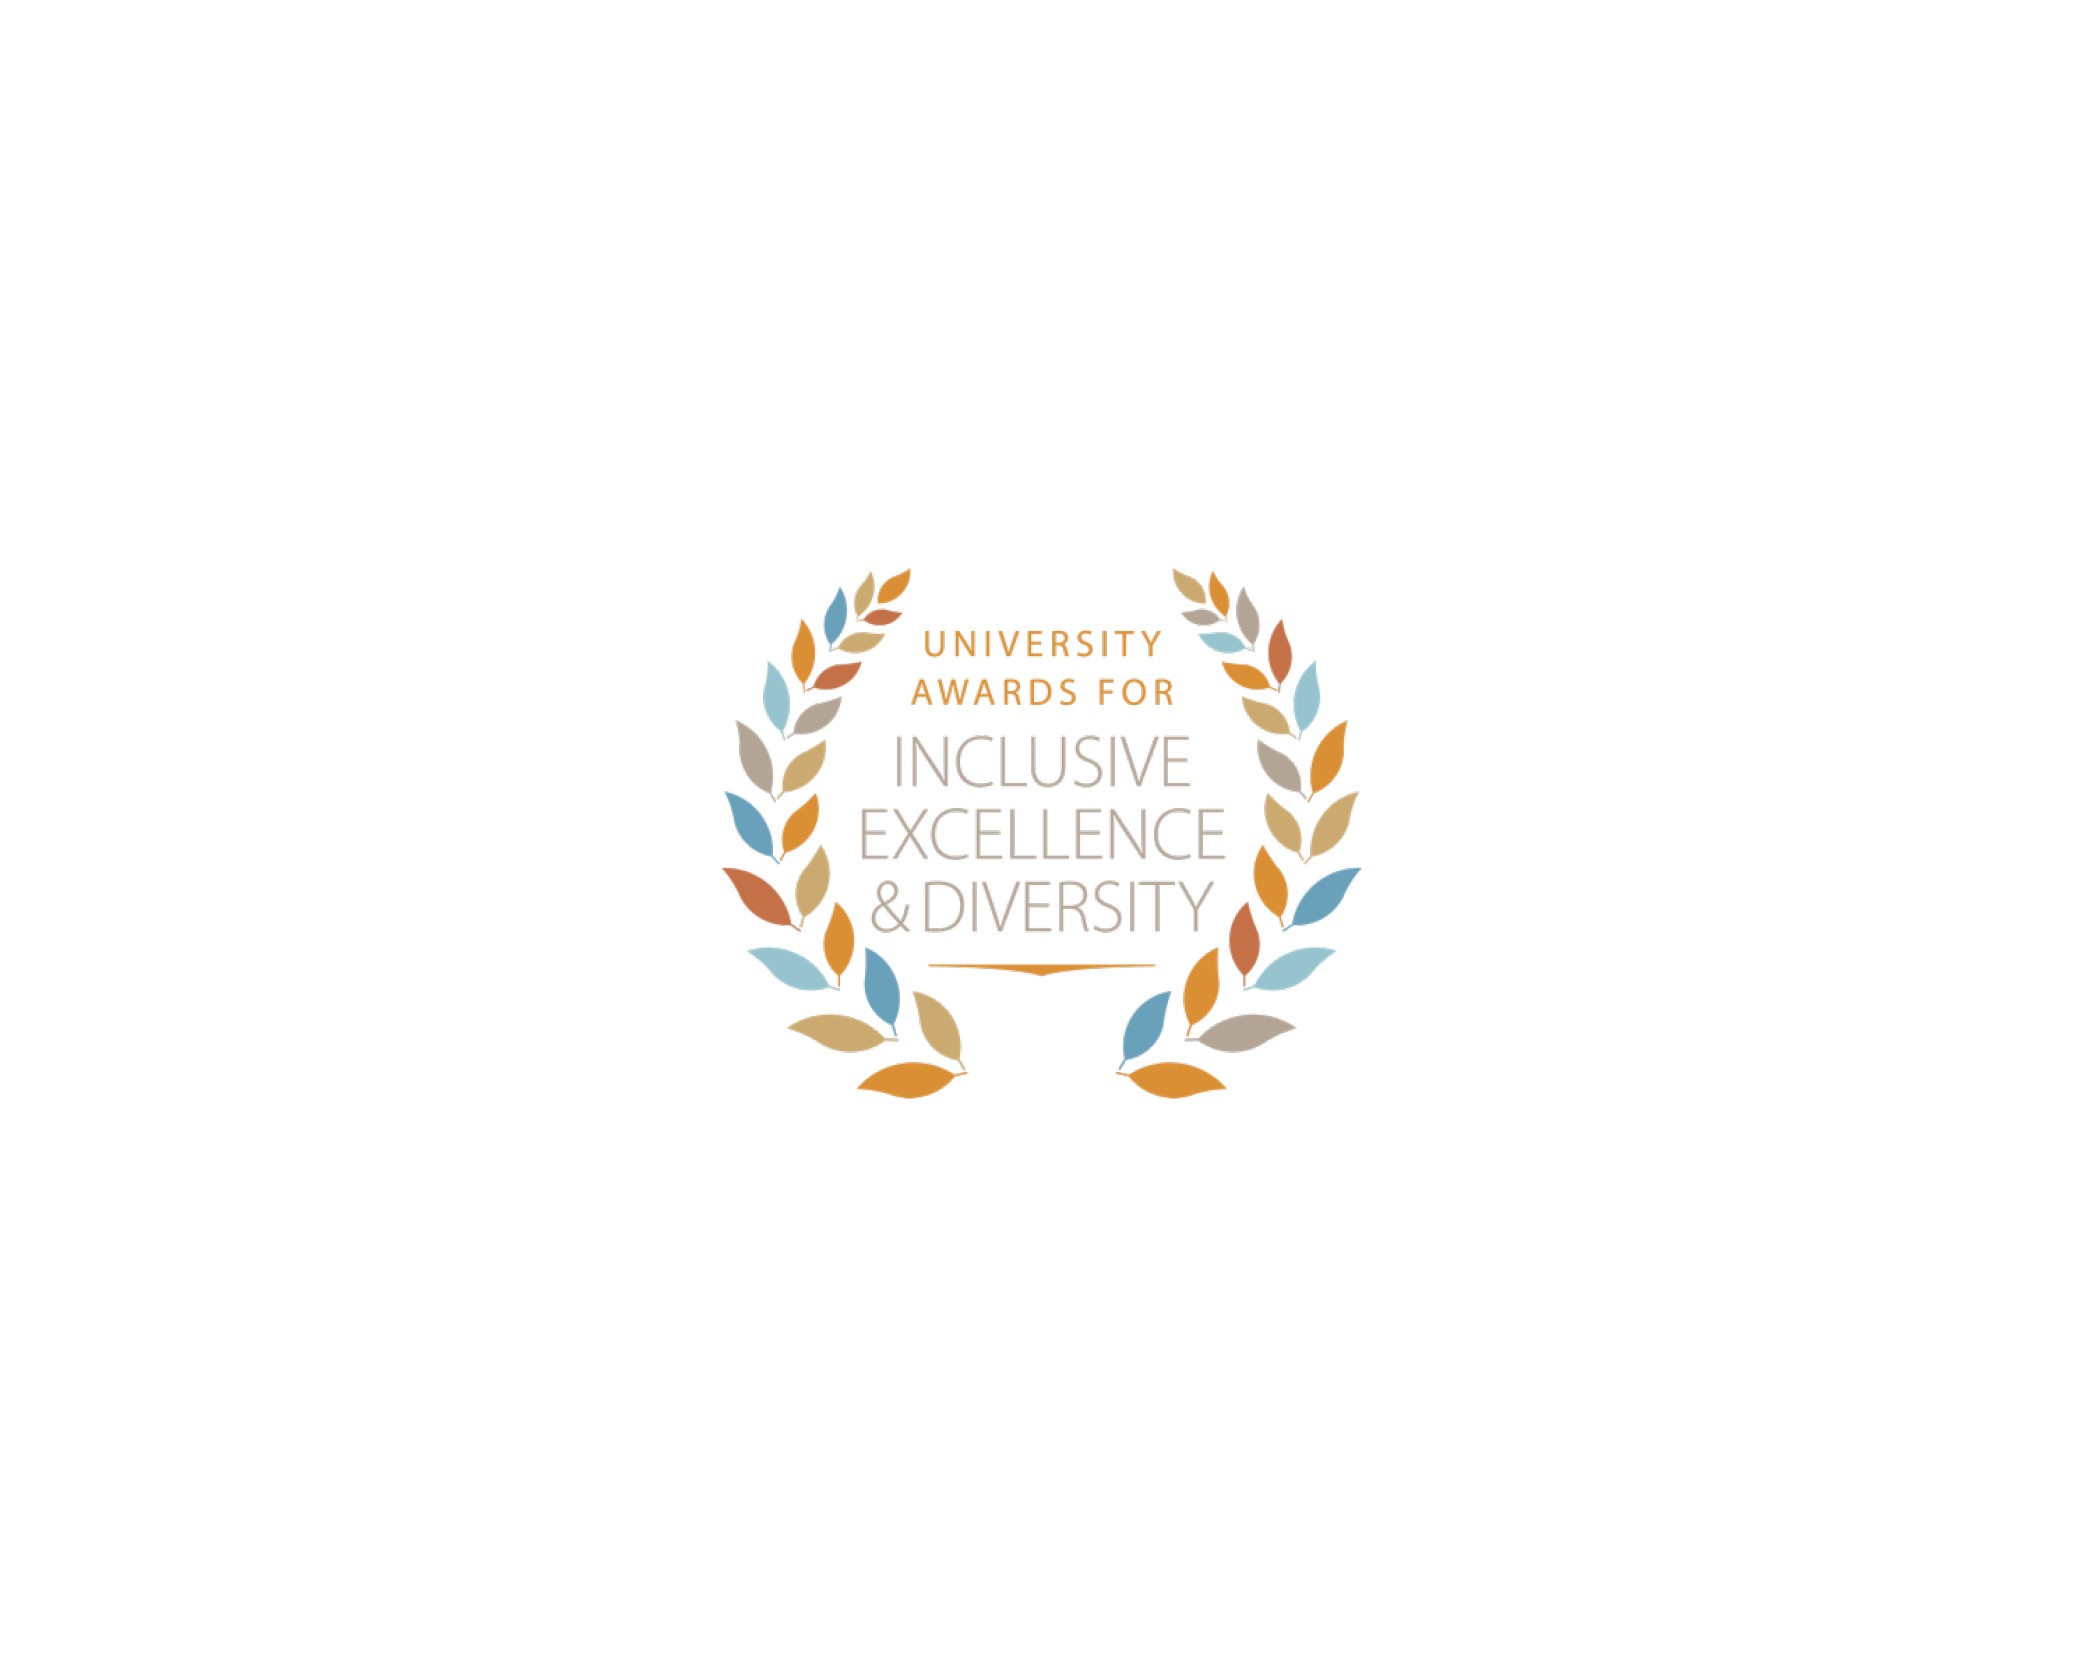 Logo for the University Awards for Inclusive Excellence & Diversity